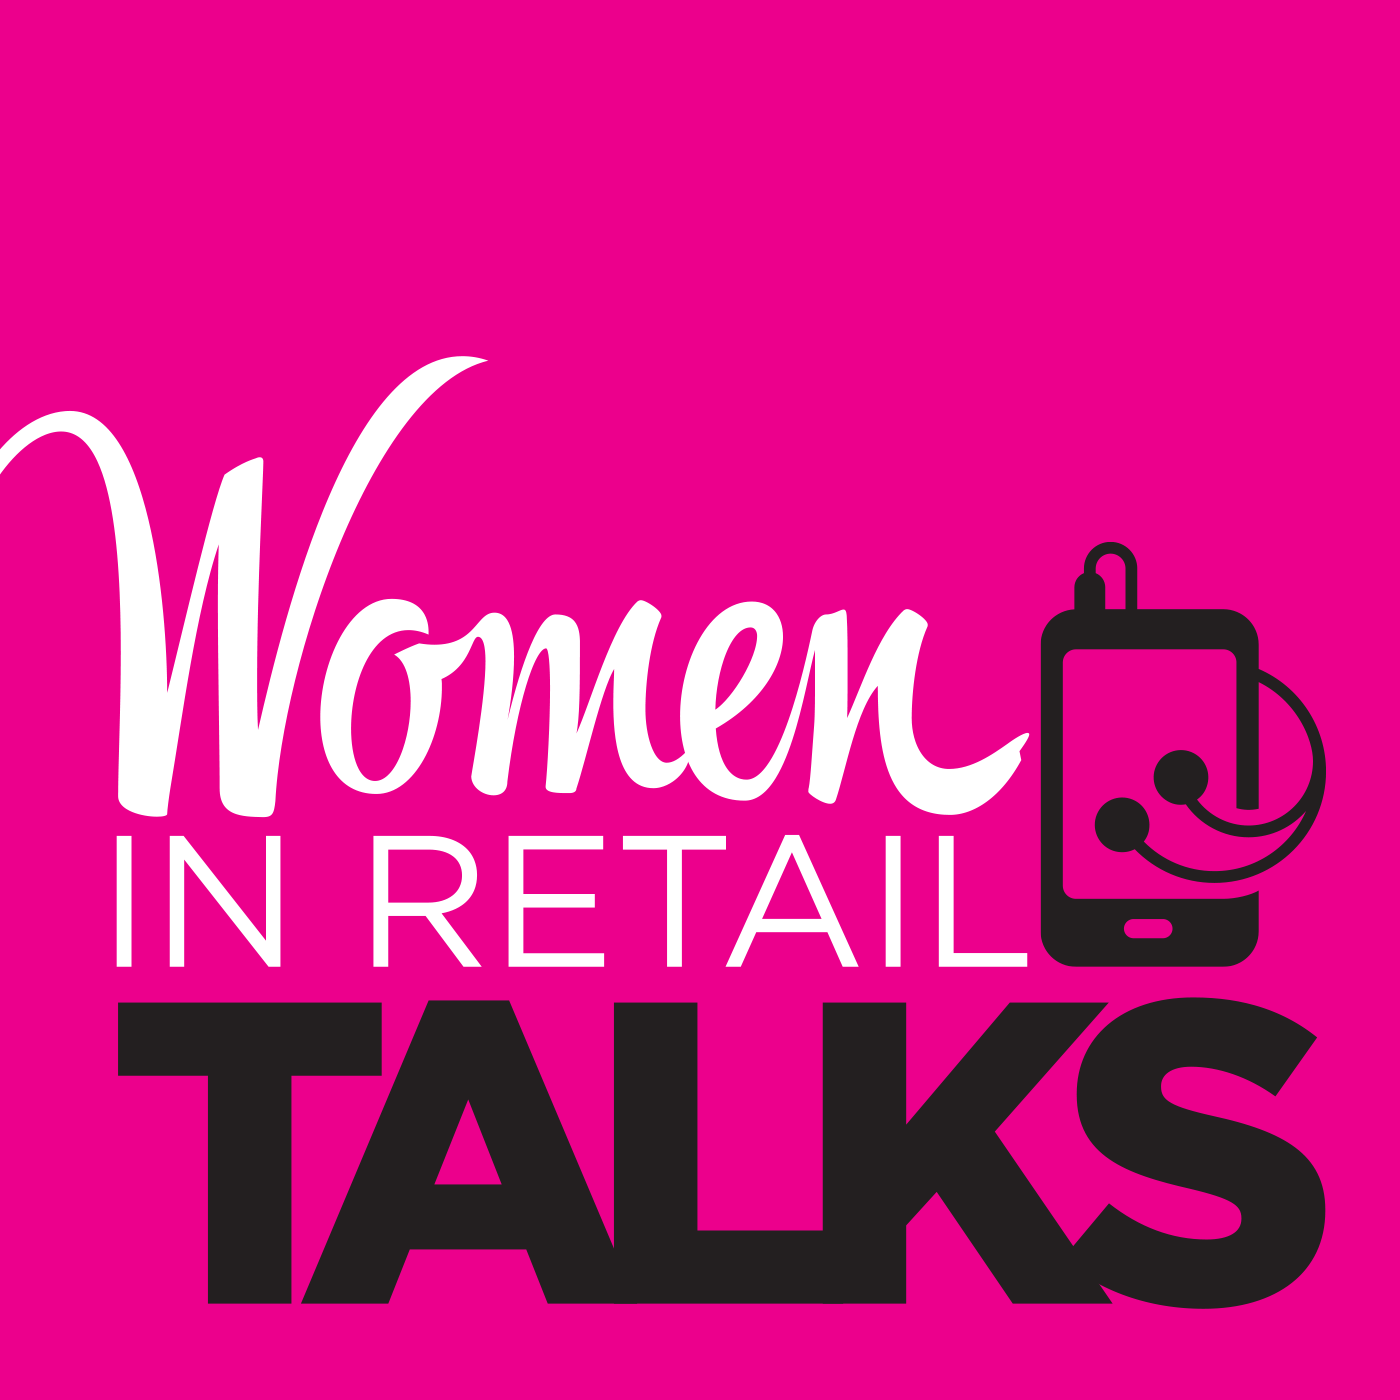 Women in Retail Talks